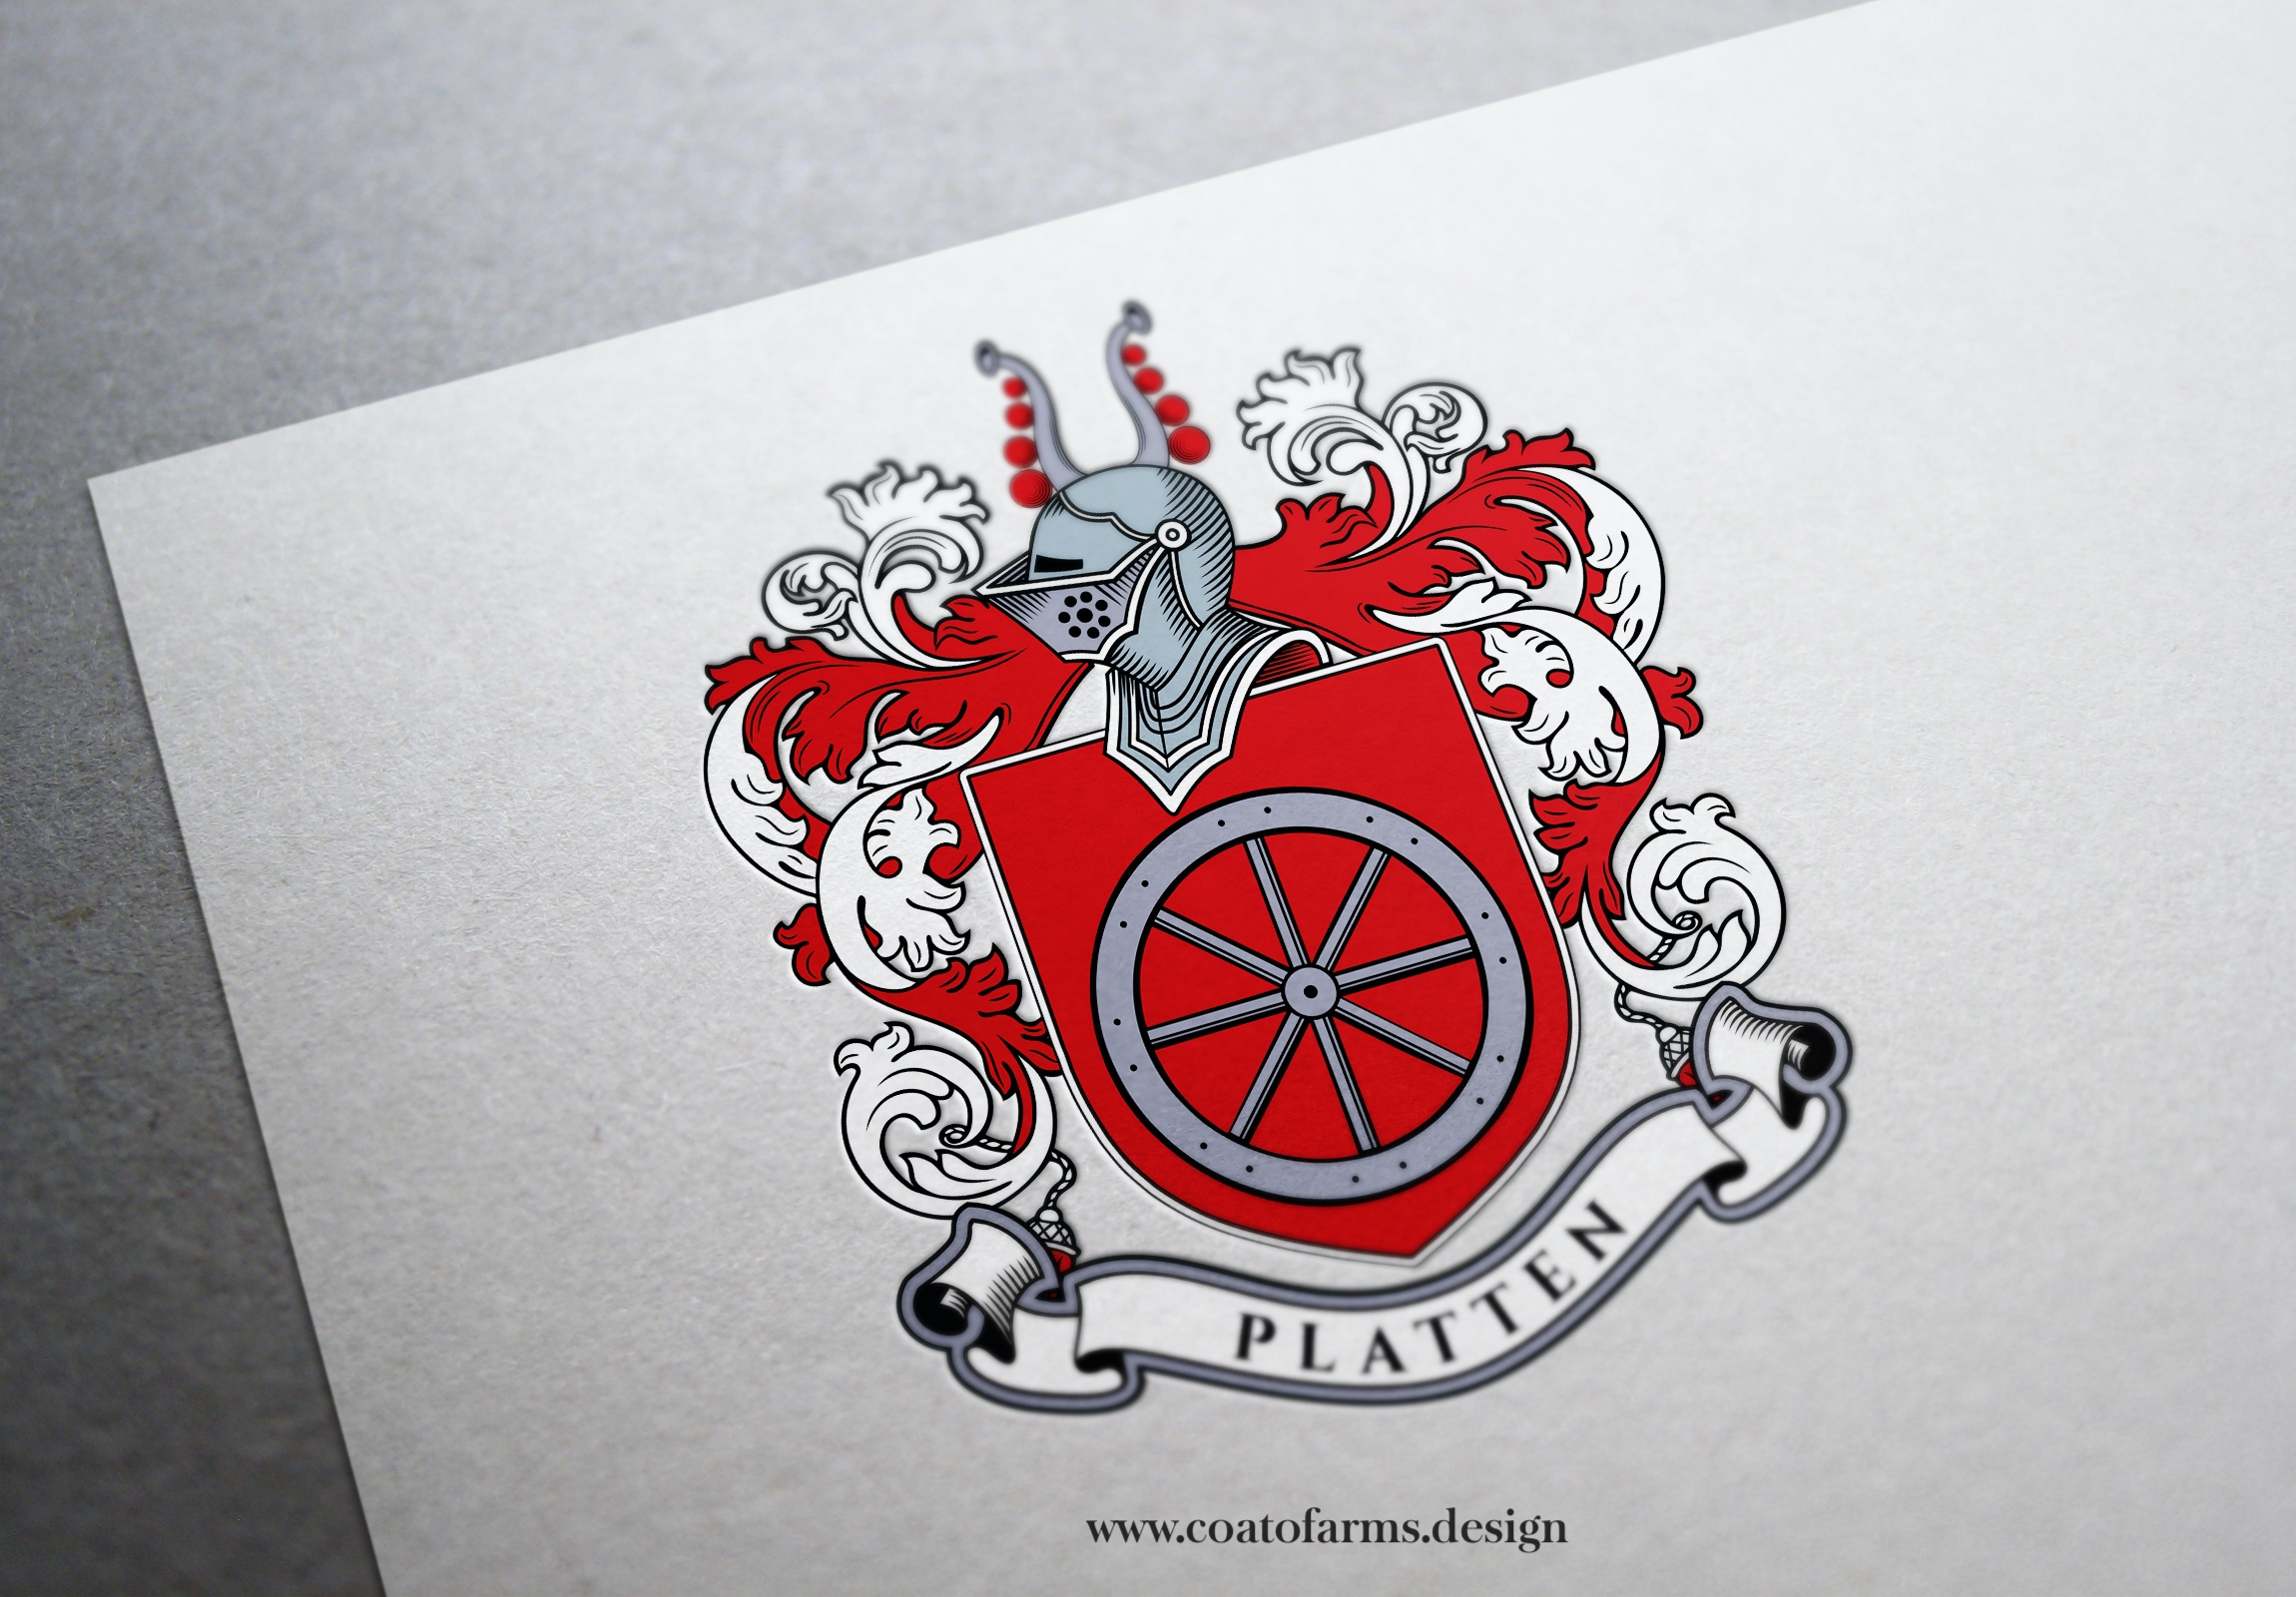 Family crest I designed for a Platten family from the UK BIG